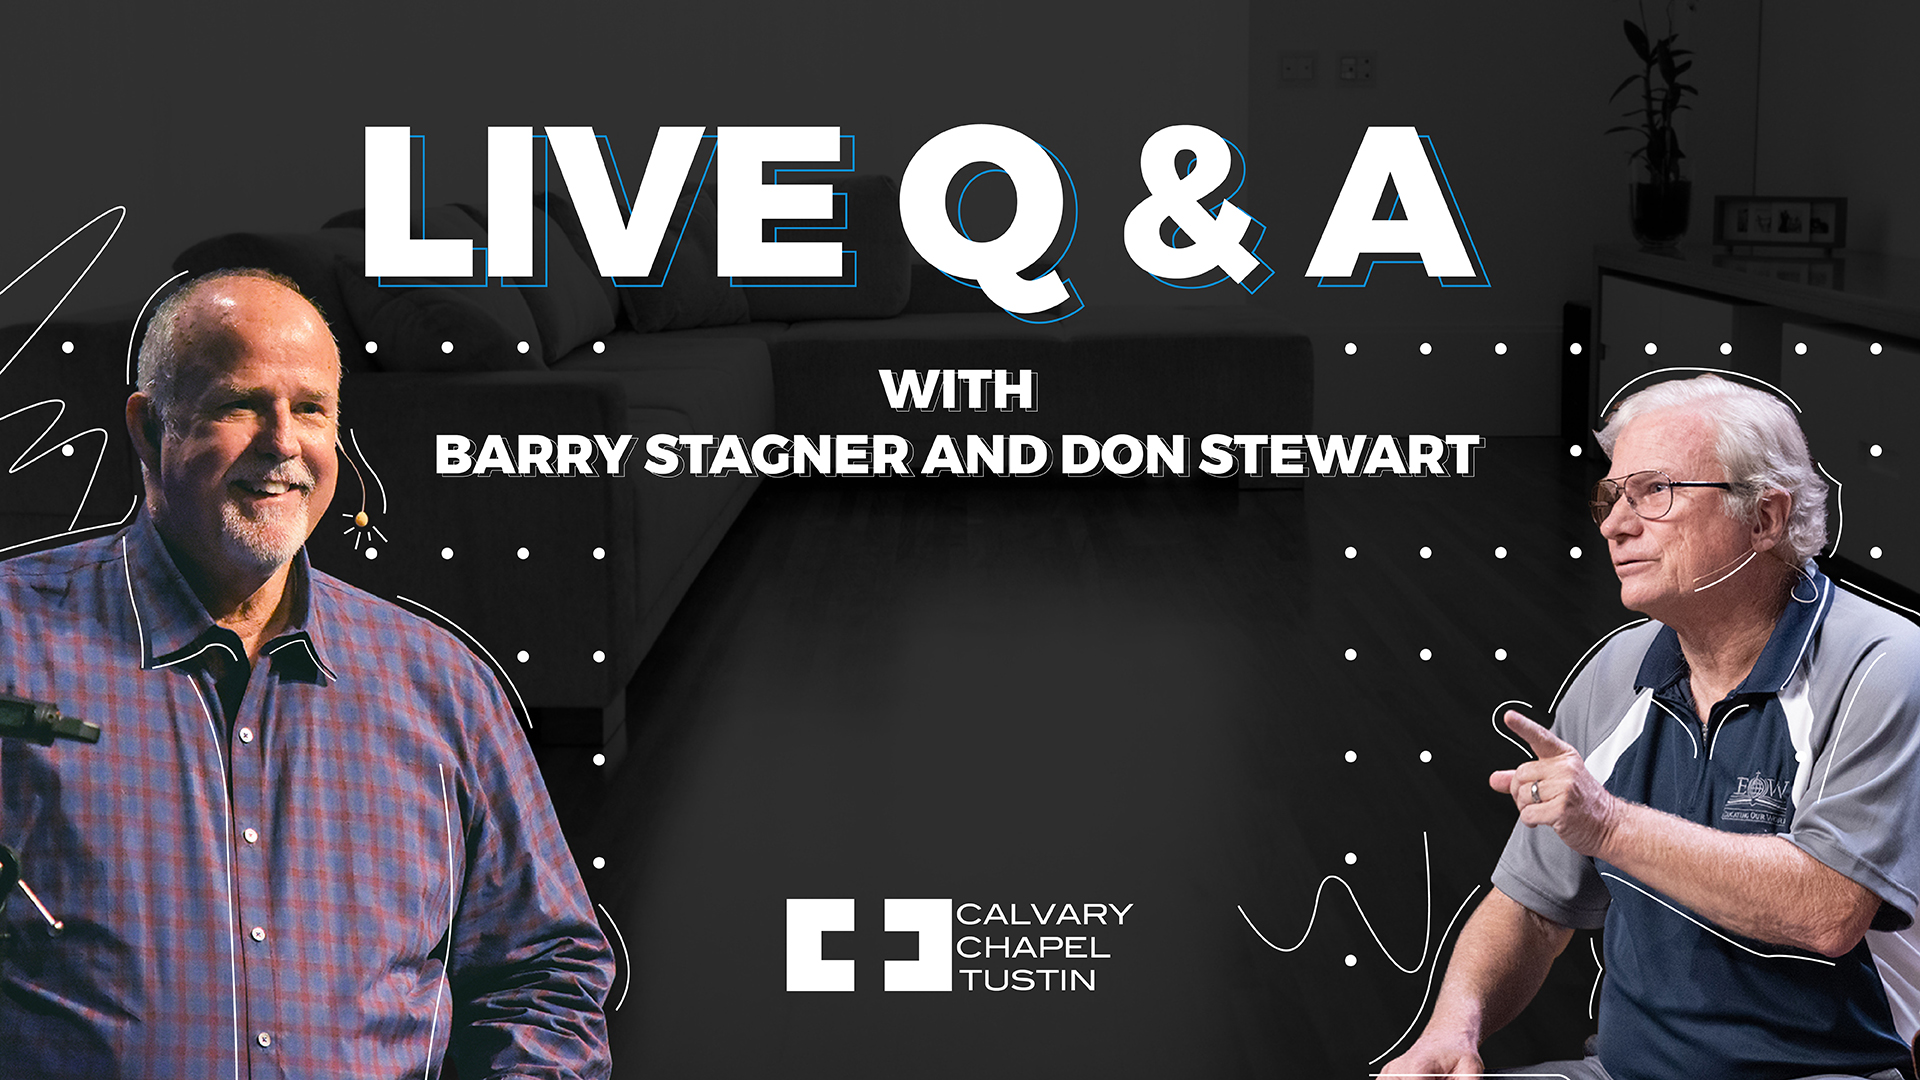 Live QA with Barry Stagner  Don Stewart